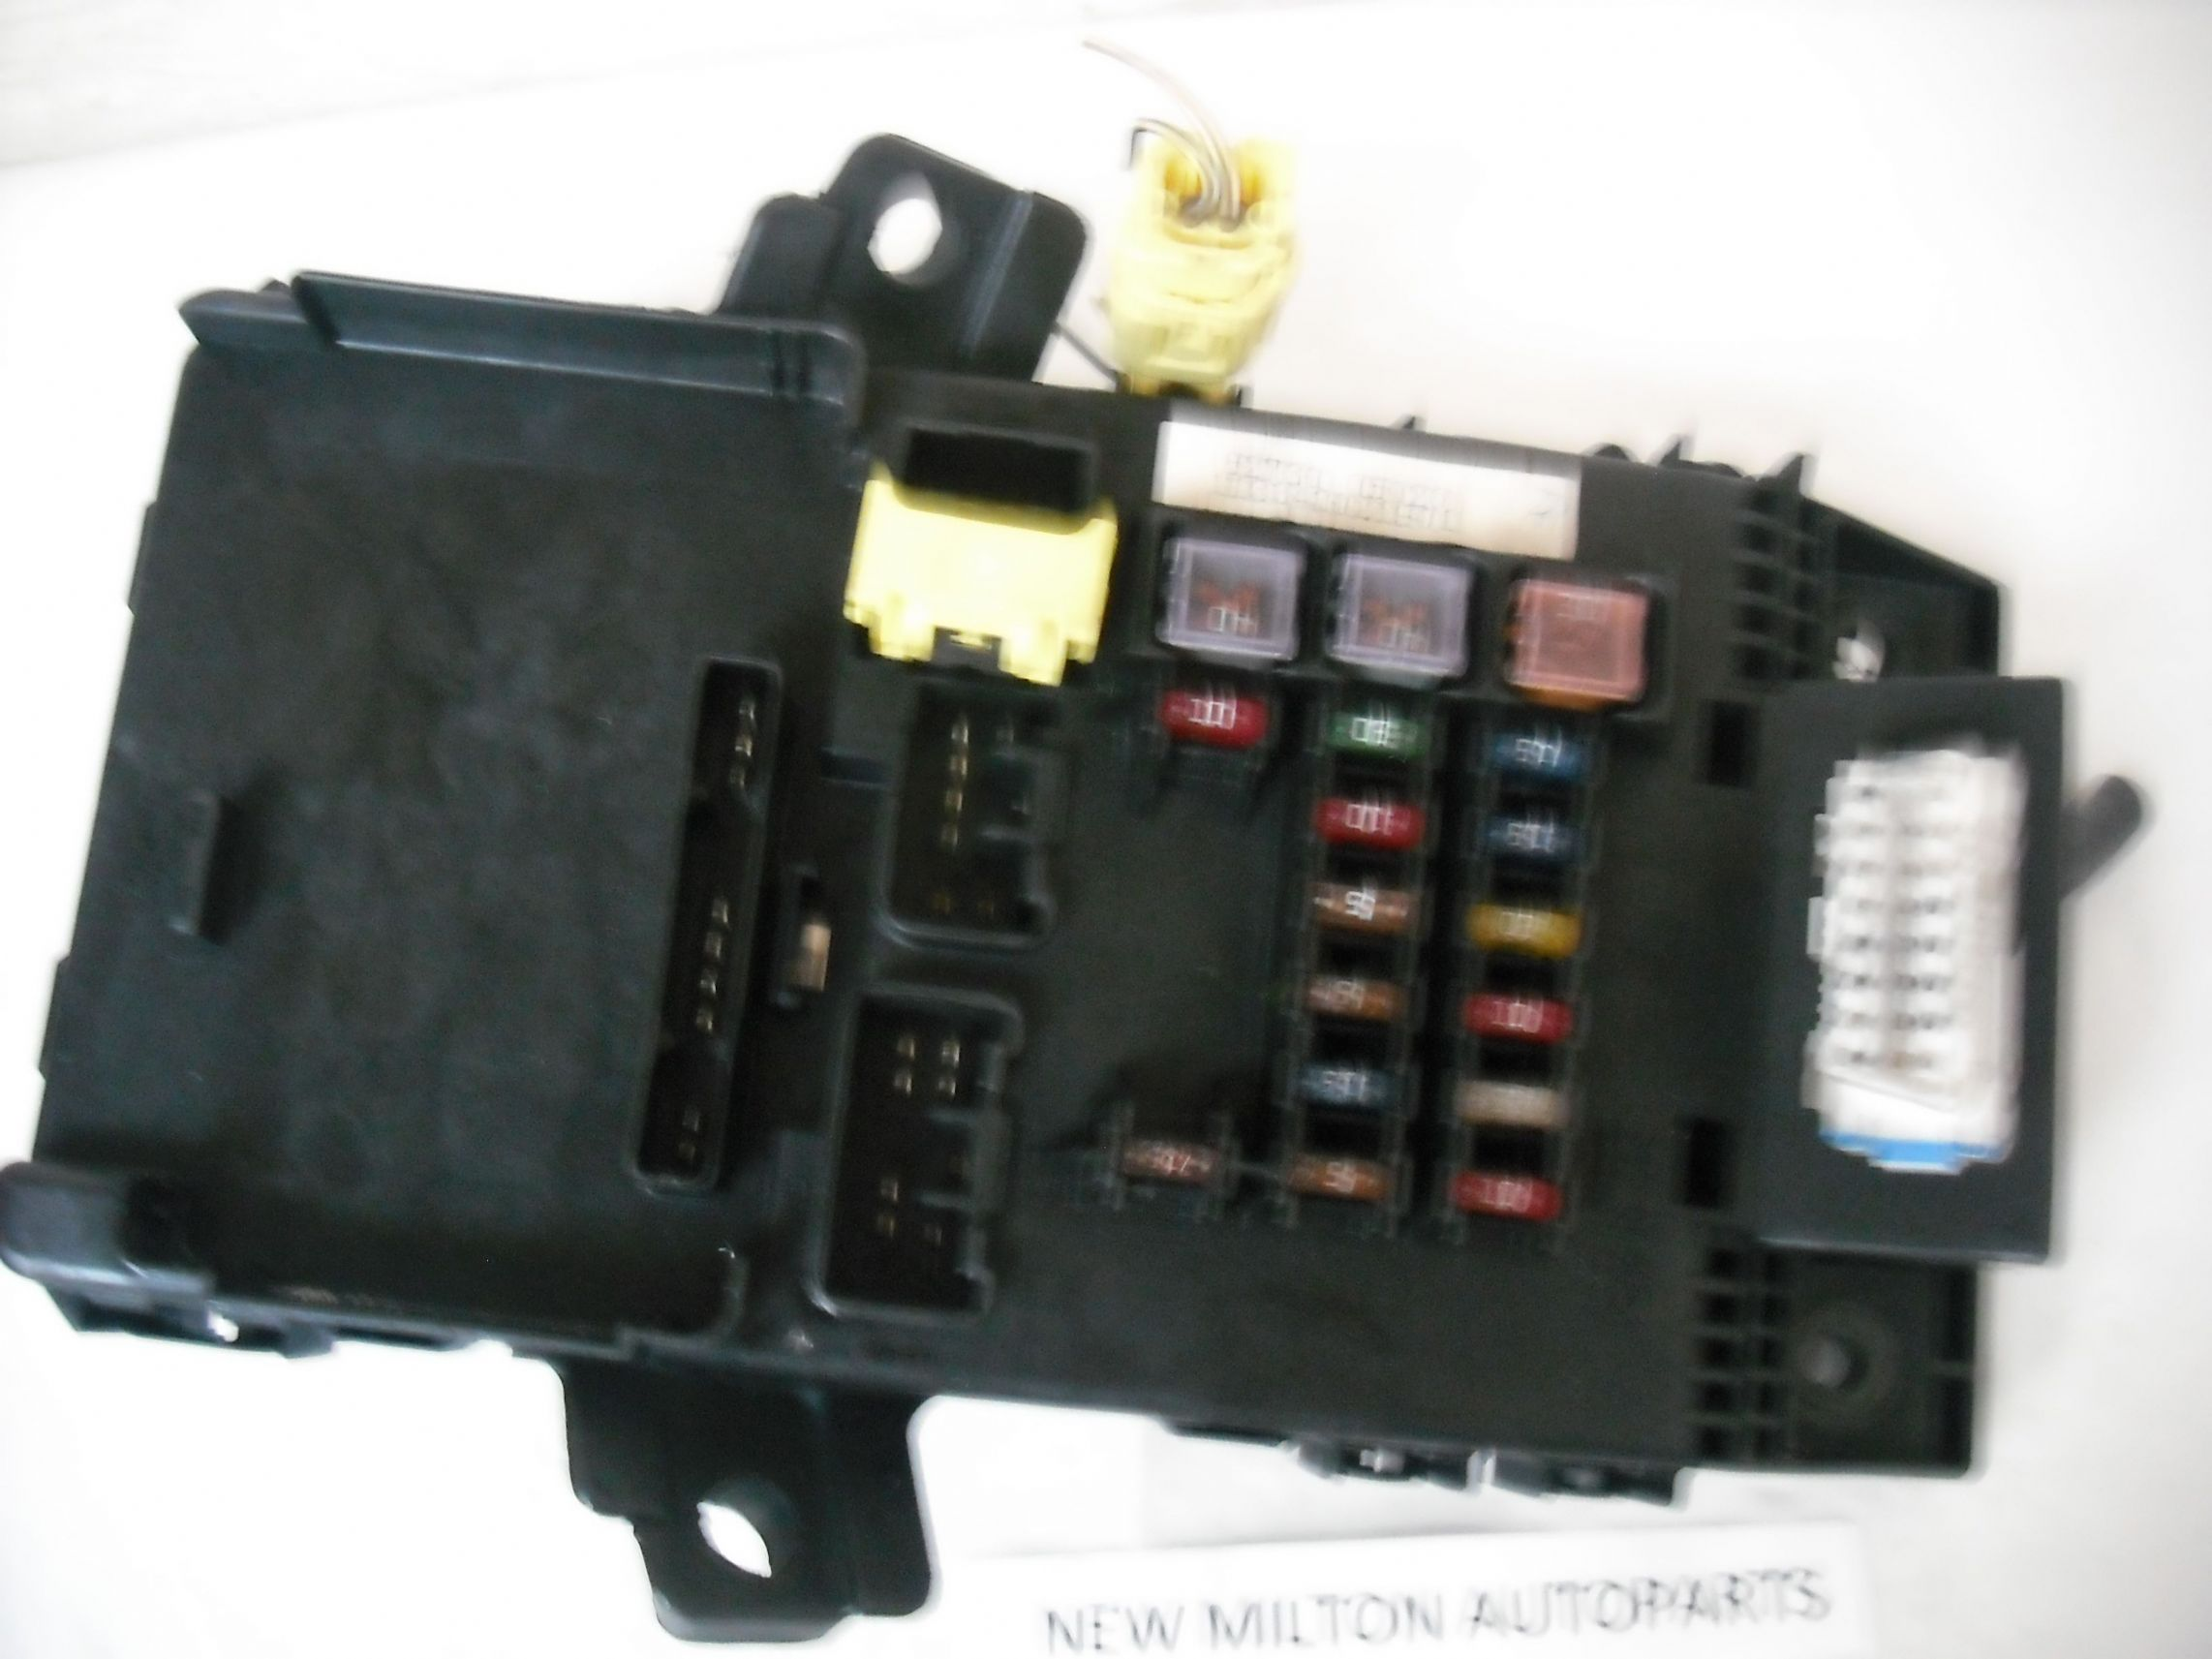 Toyota Avensis Facelift 2000 2003 Fuse Box Controller 82730 05020 113343021901